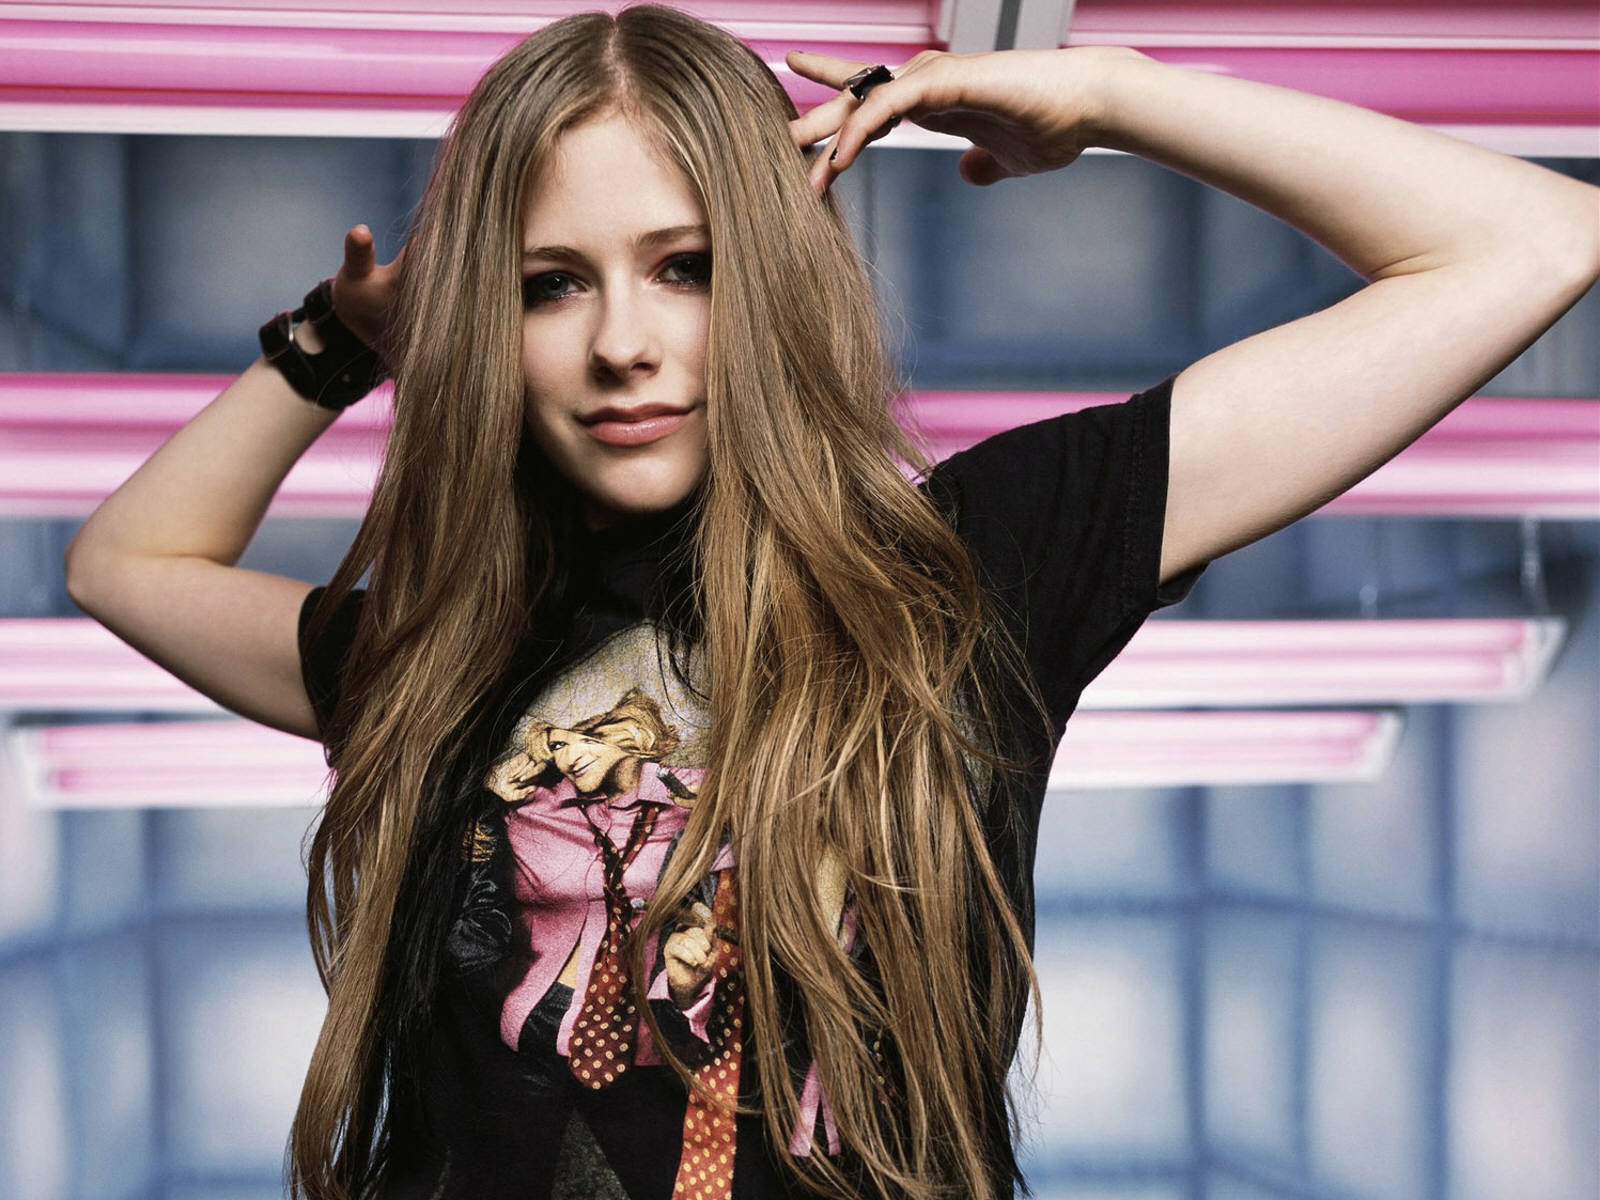 Foto hot avril lavigne